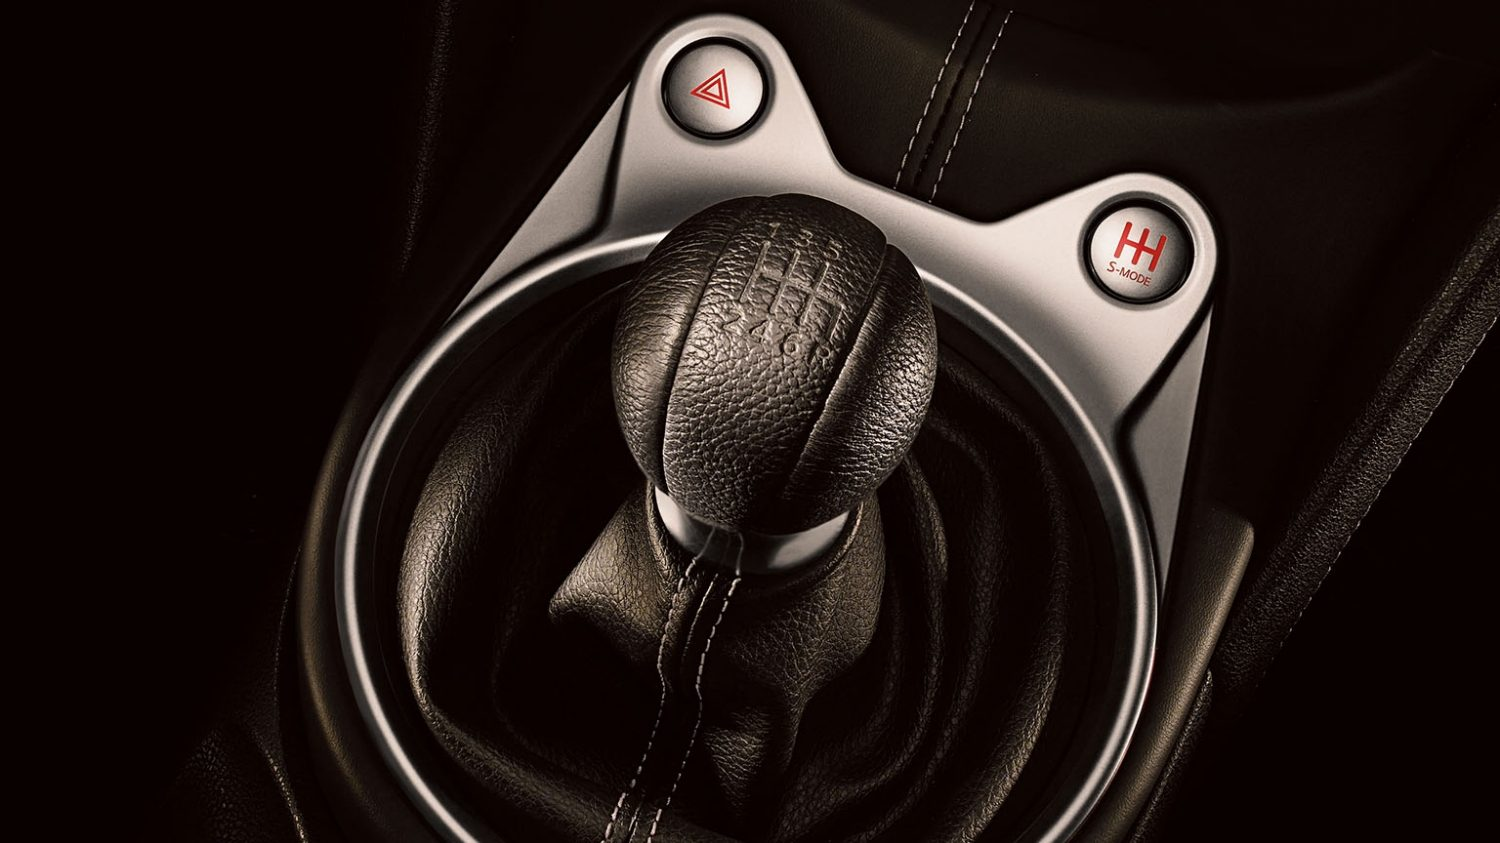 6-speed MT Shifter Detail